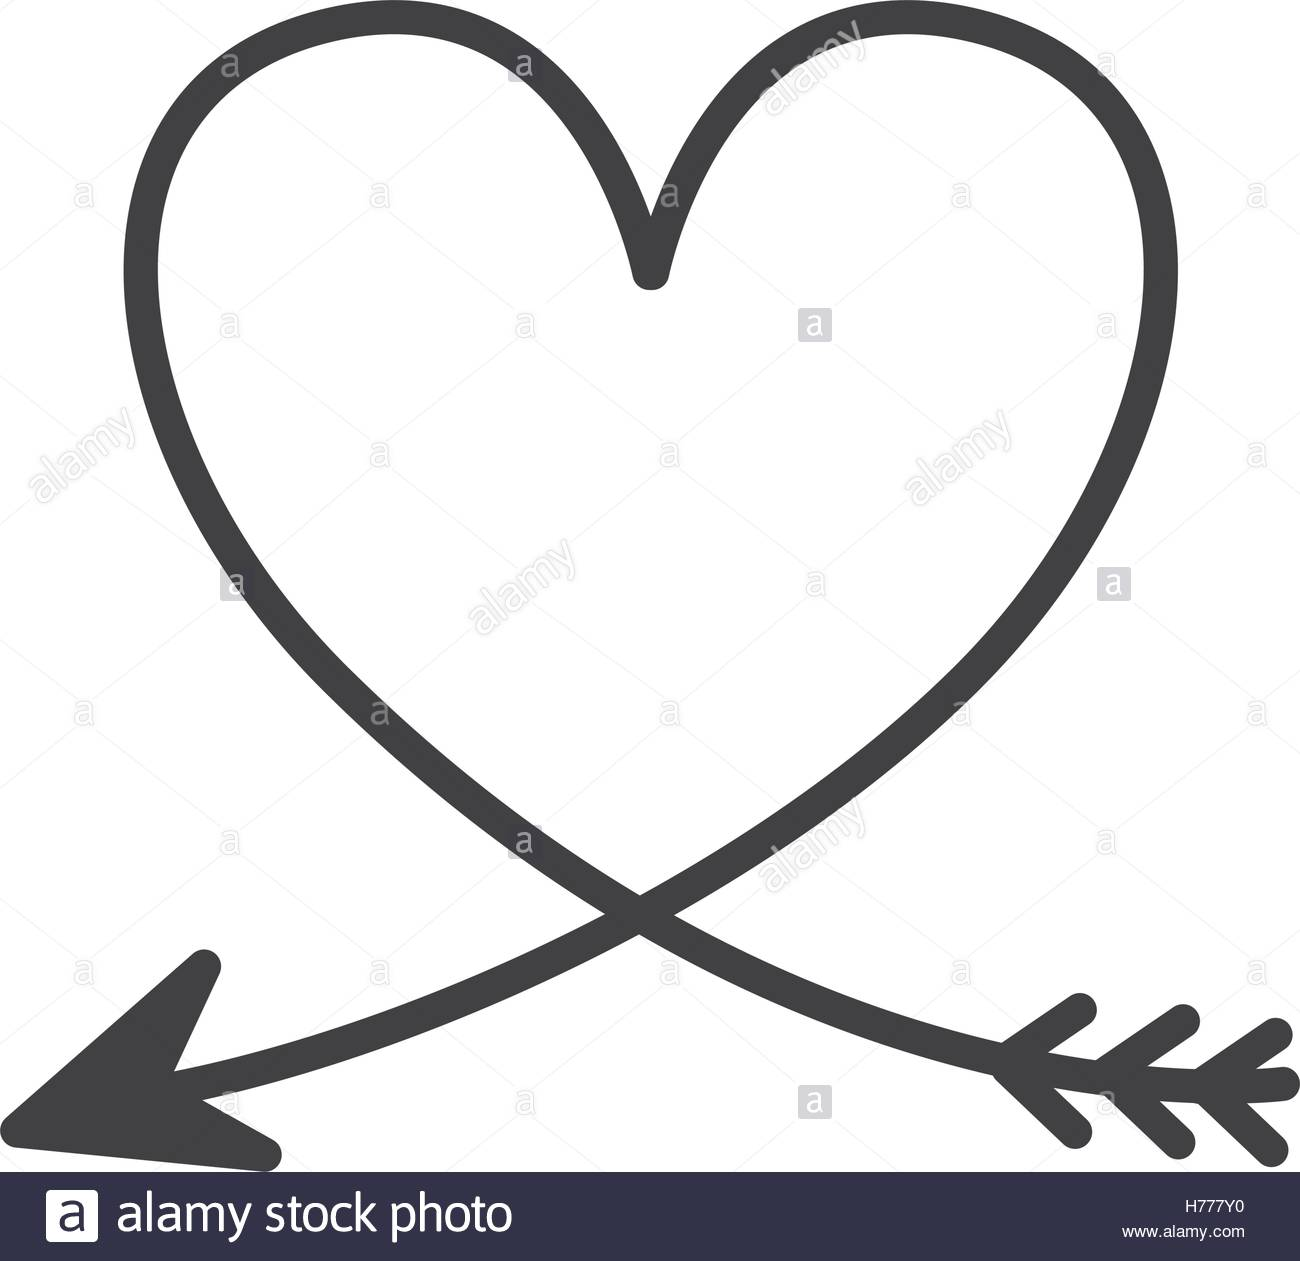 1300x1261 Silhouette Of Heart With Arrow Vector Illustration Stock Vector